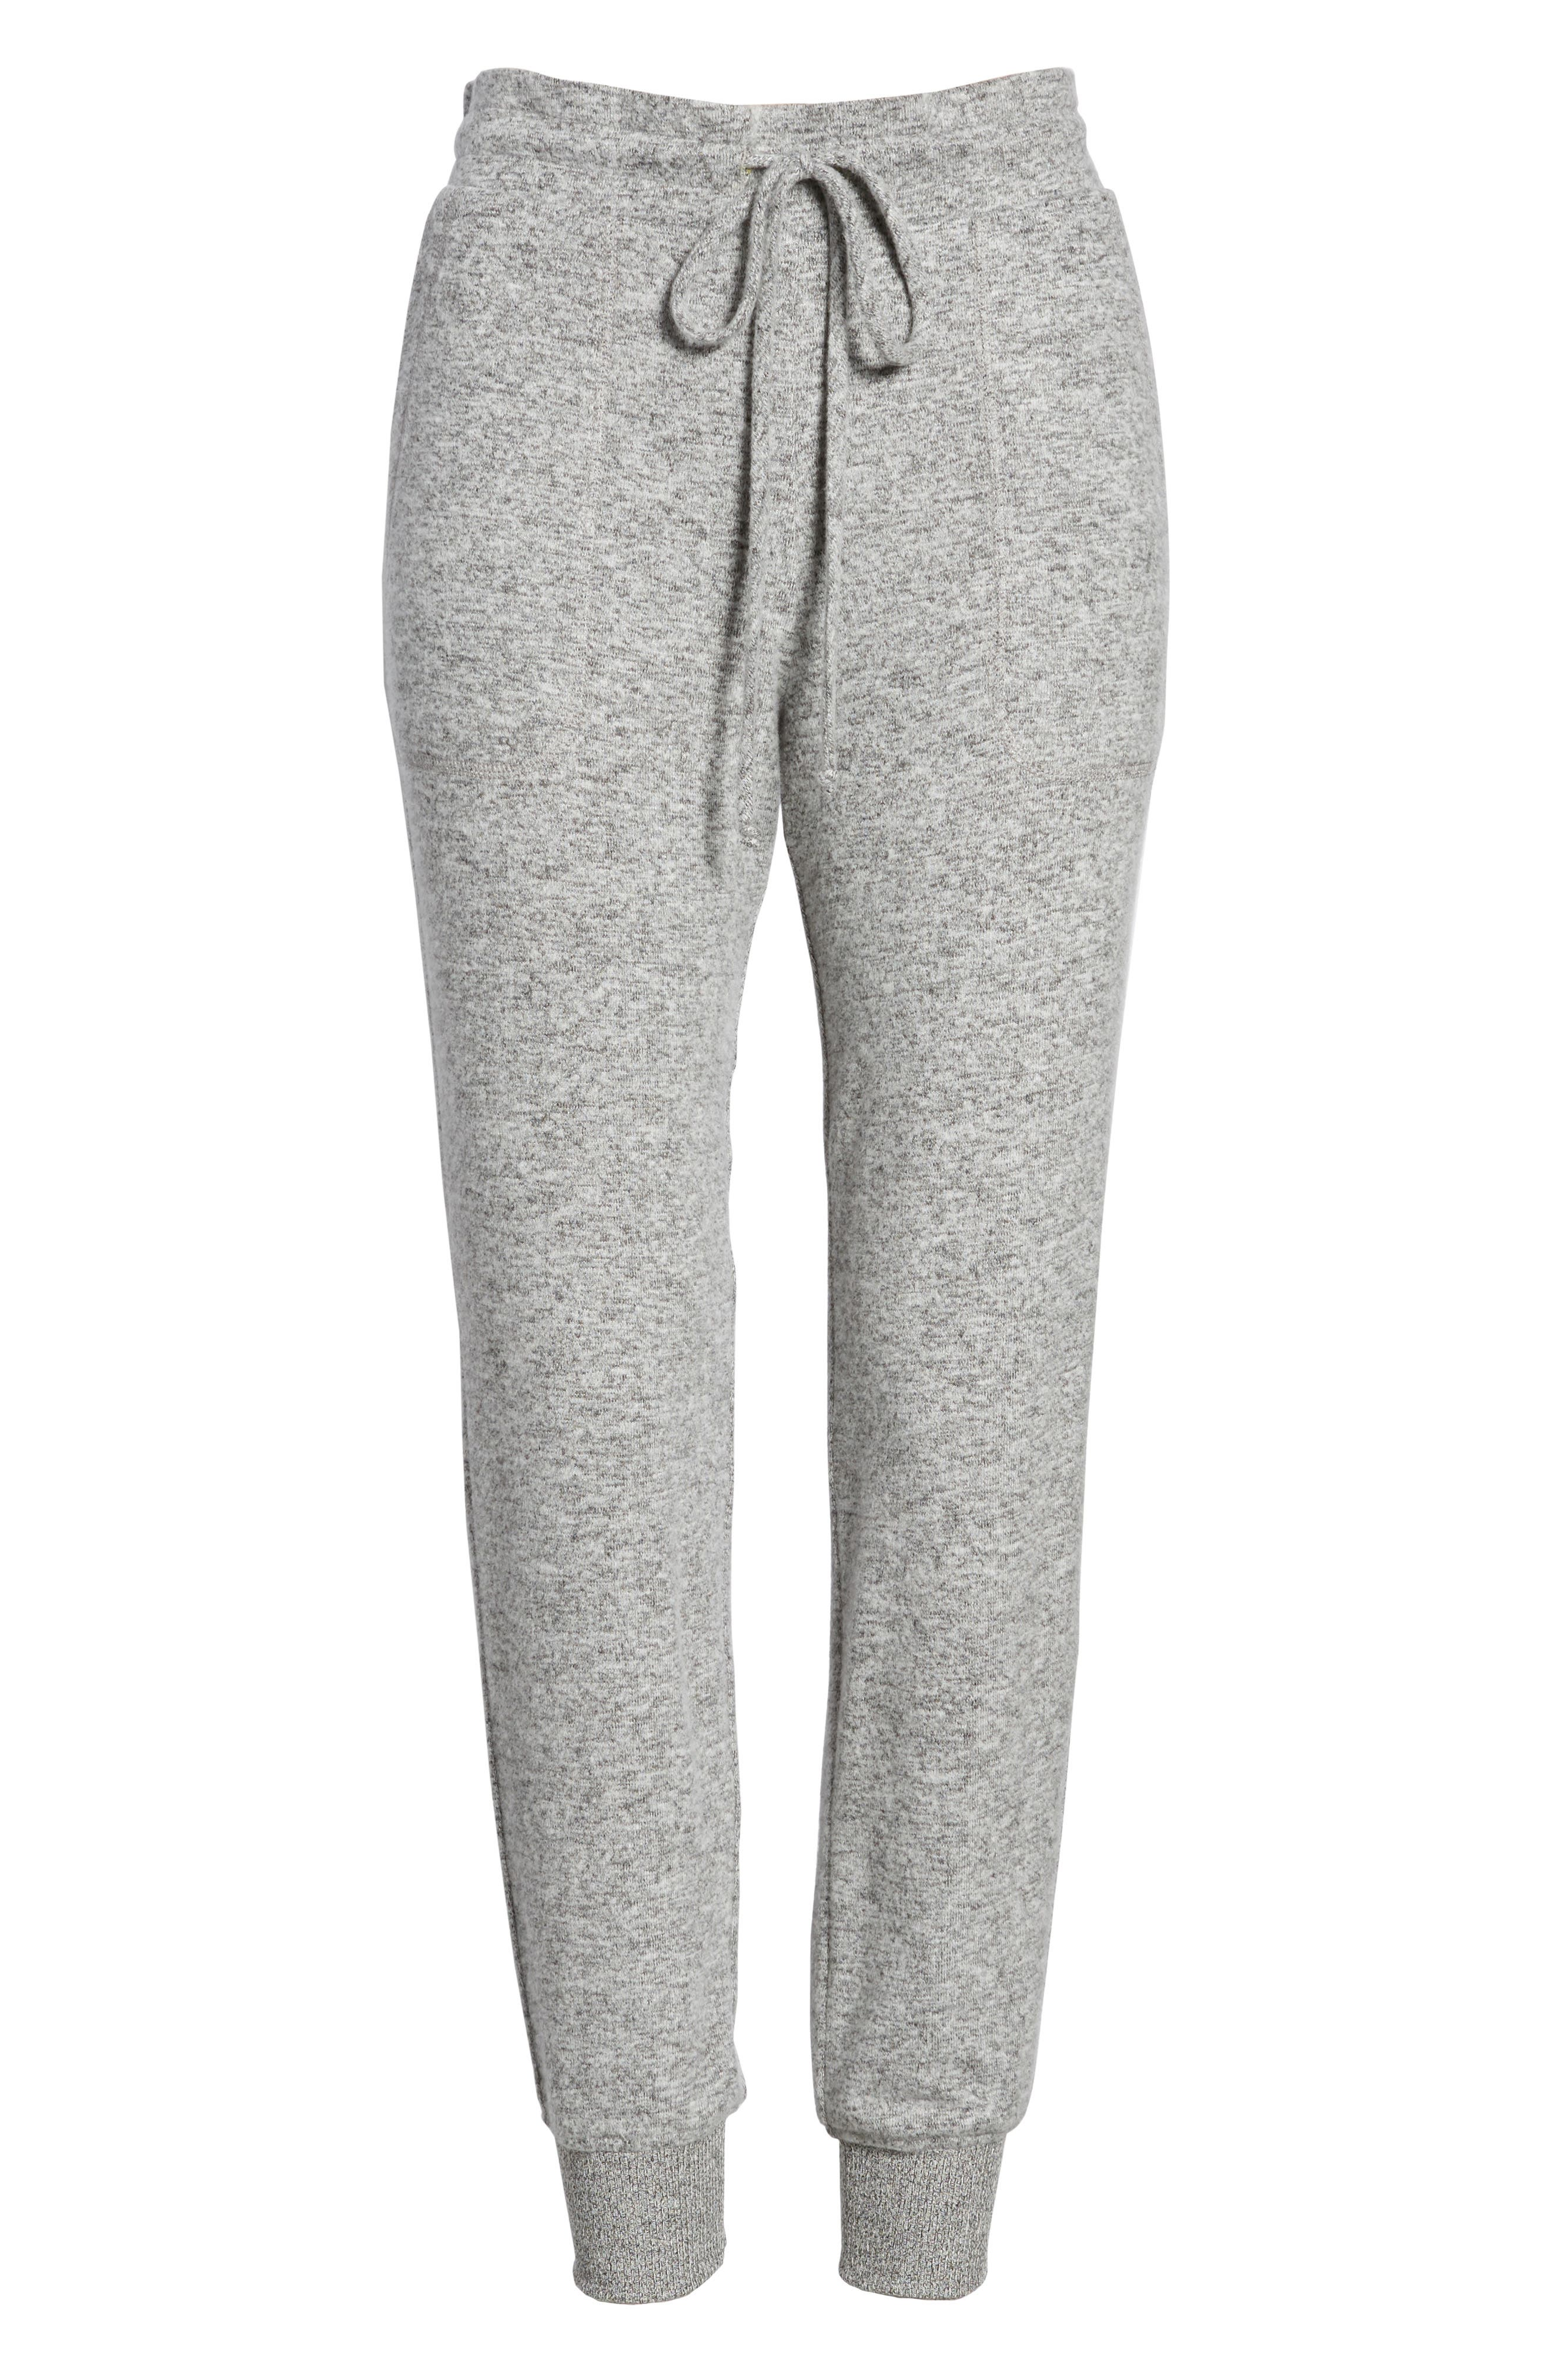 x Living in Yellow Skye Cozy Jogger Pants,                             Alternate thumbnail 8, color,                             Heather Grey